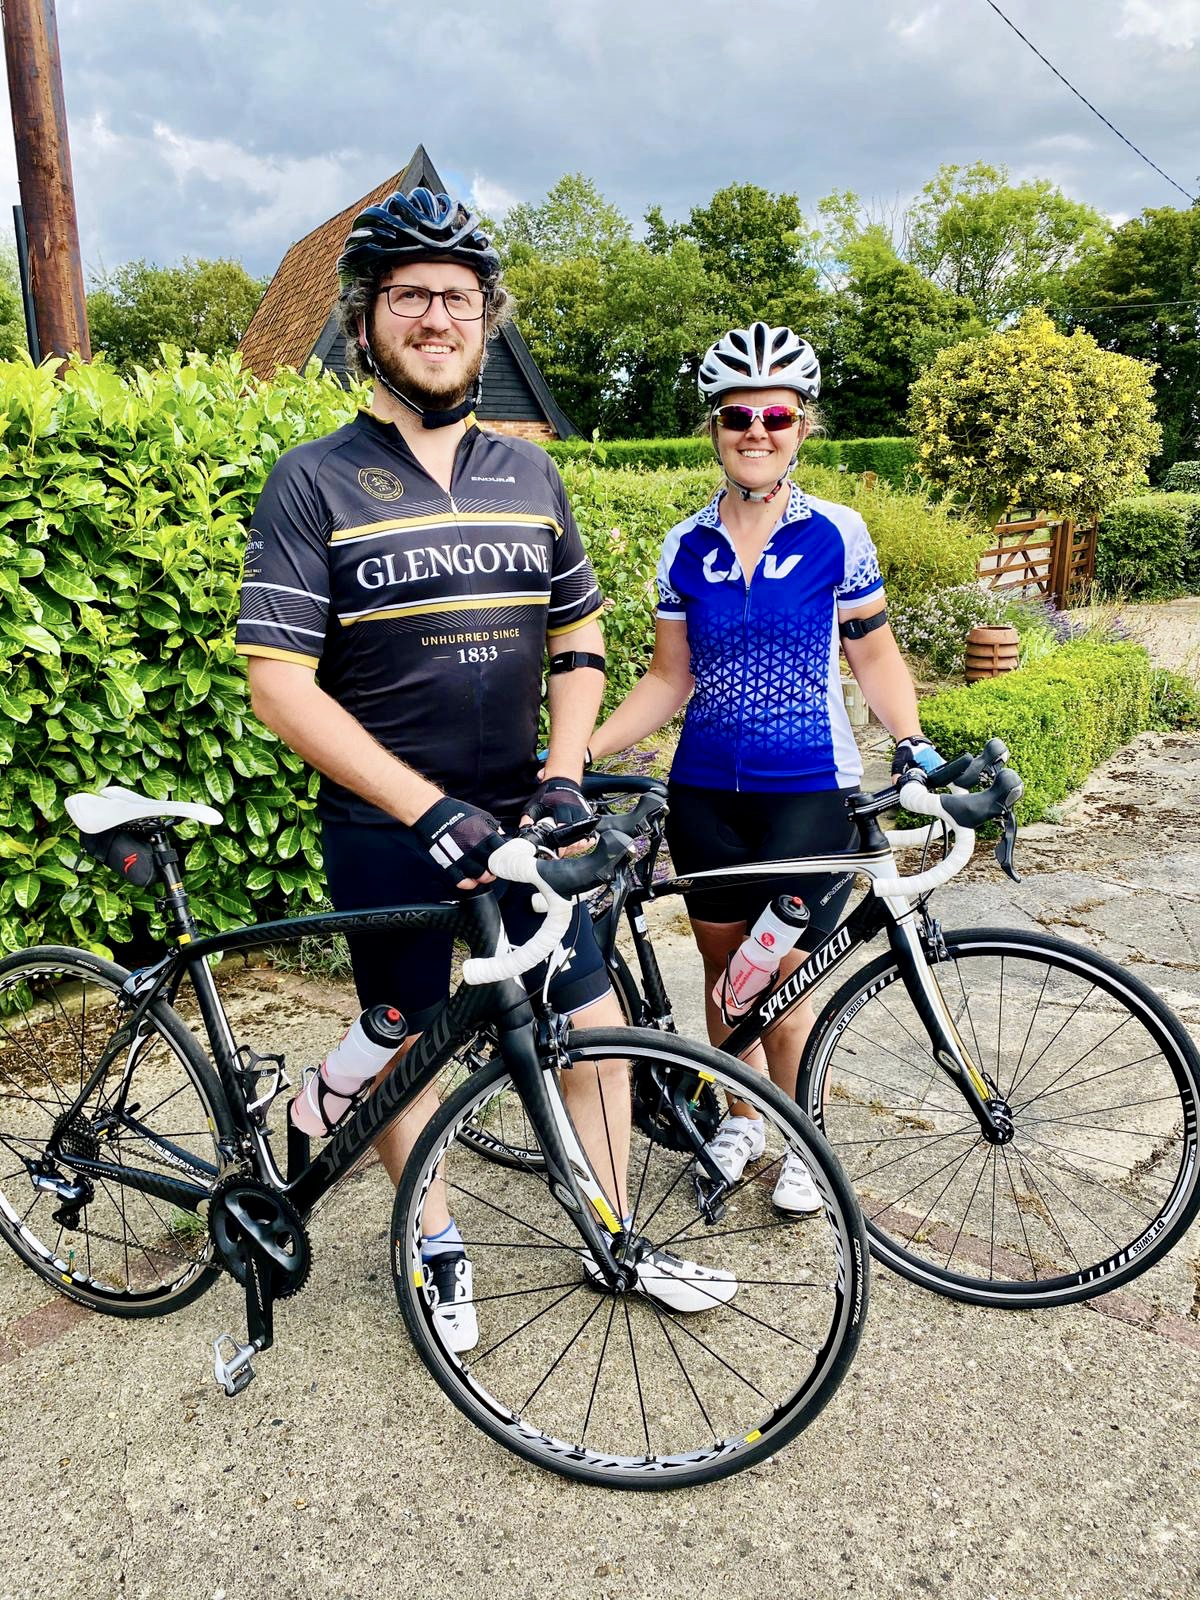 Kate and Andrews 100 mile cycle challenge around Norfolk